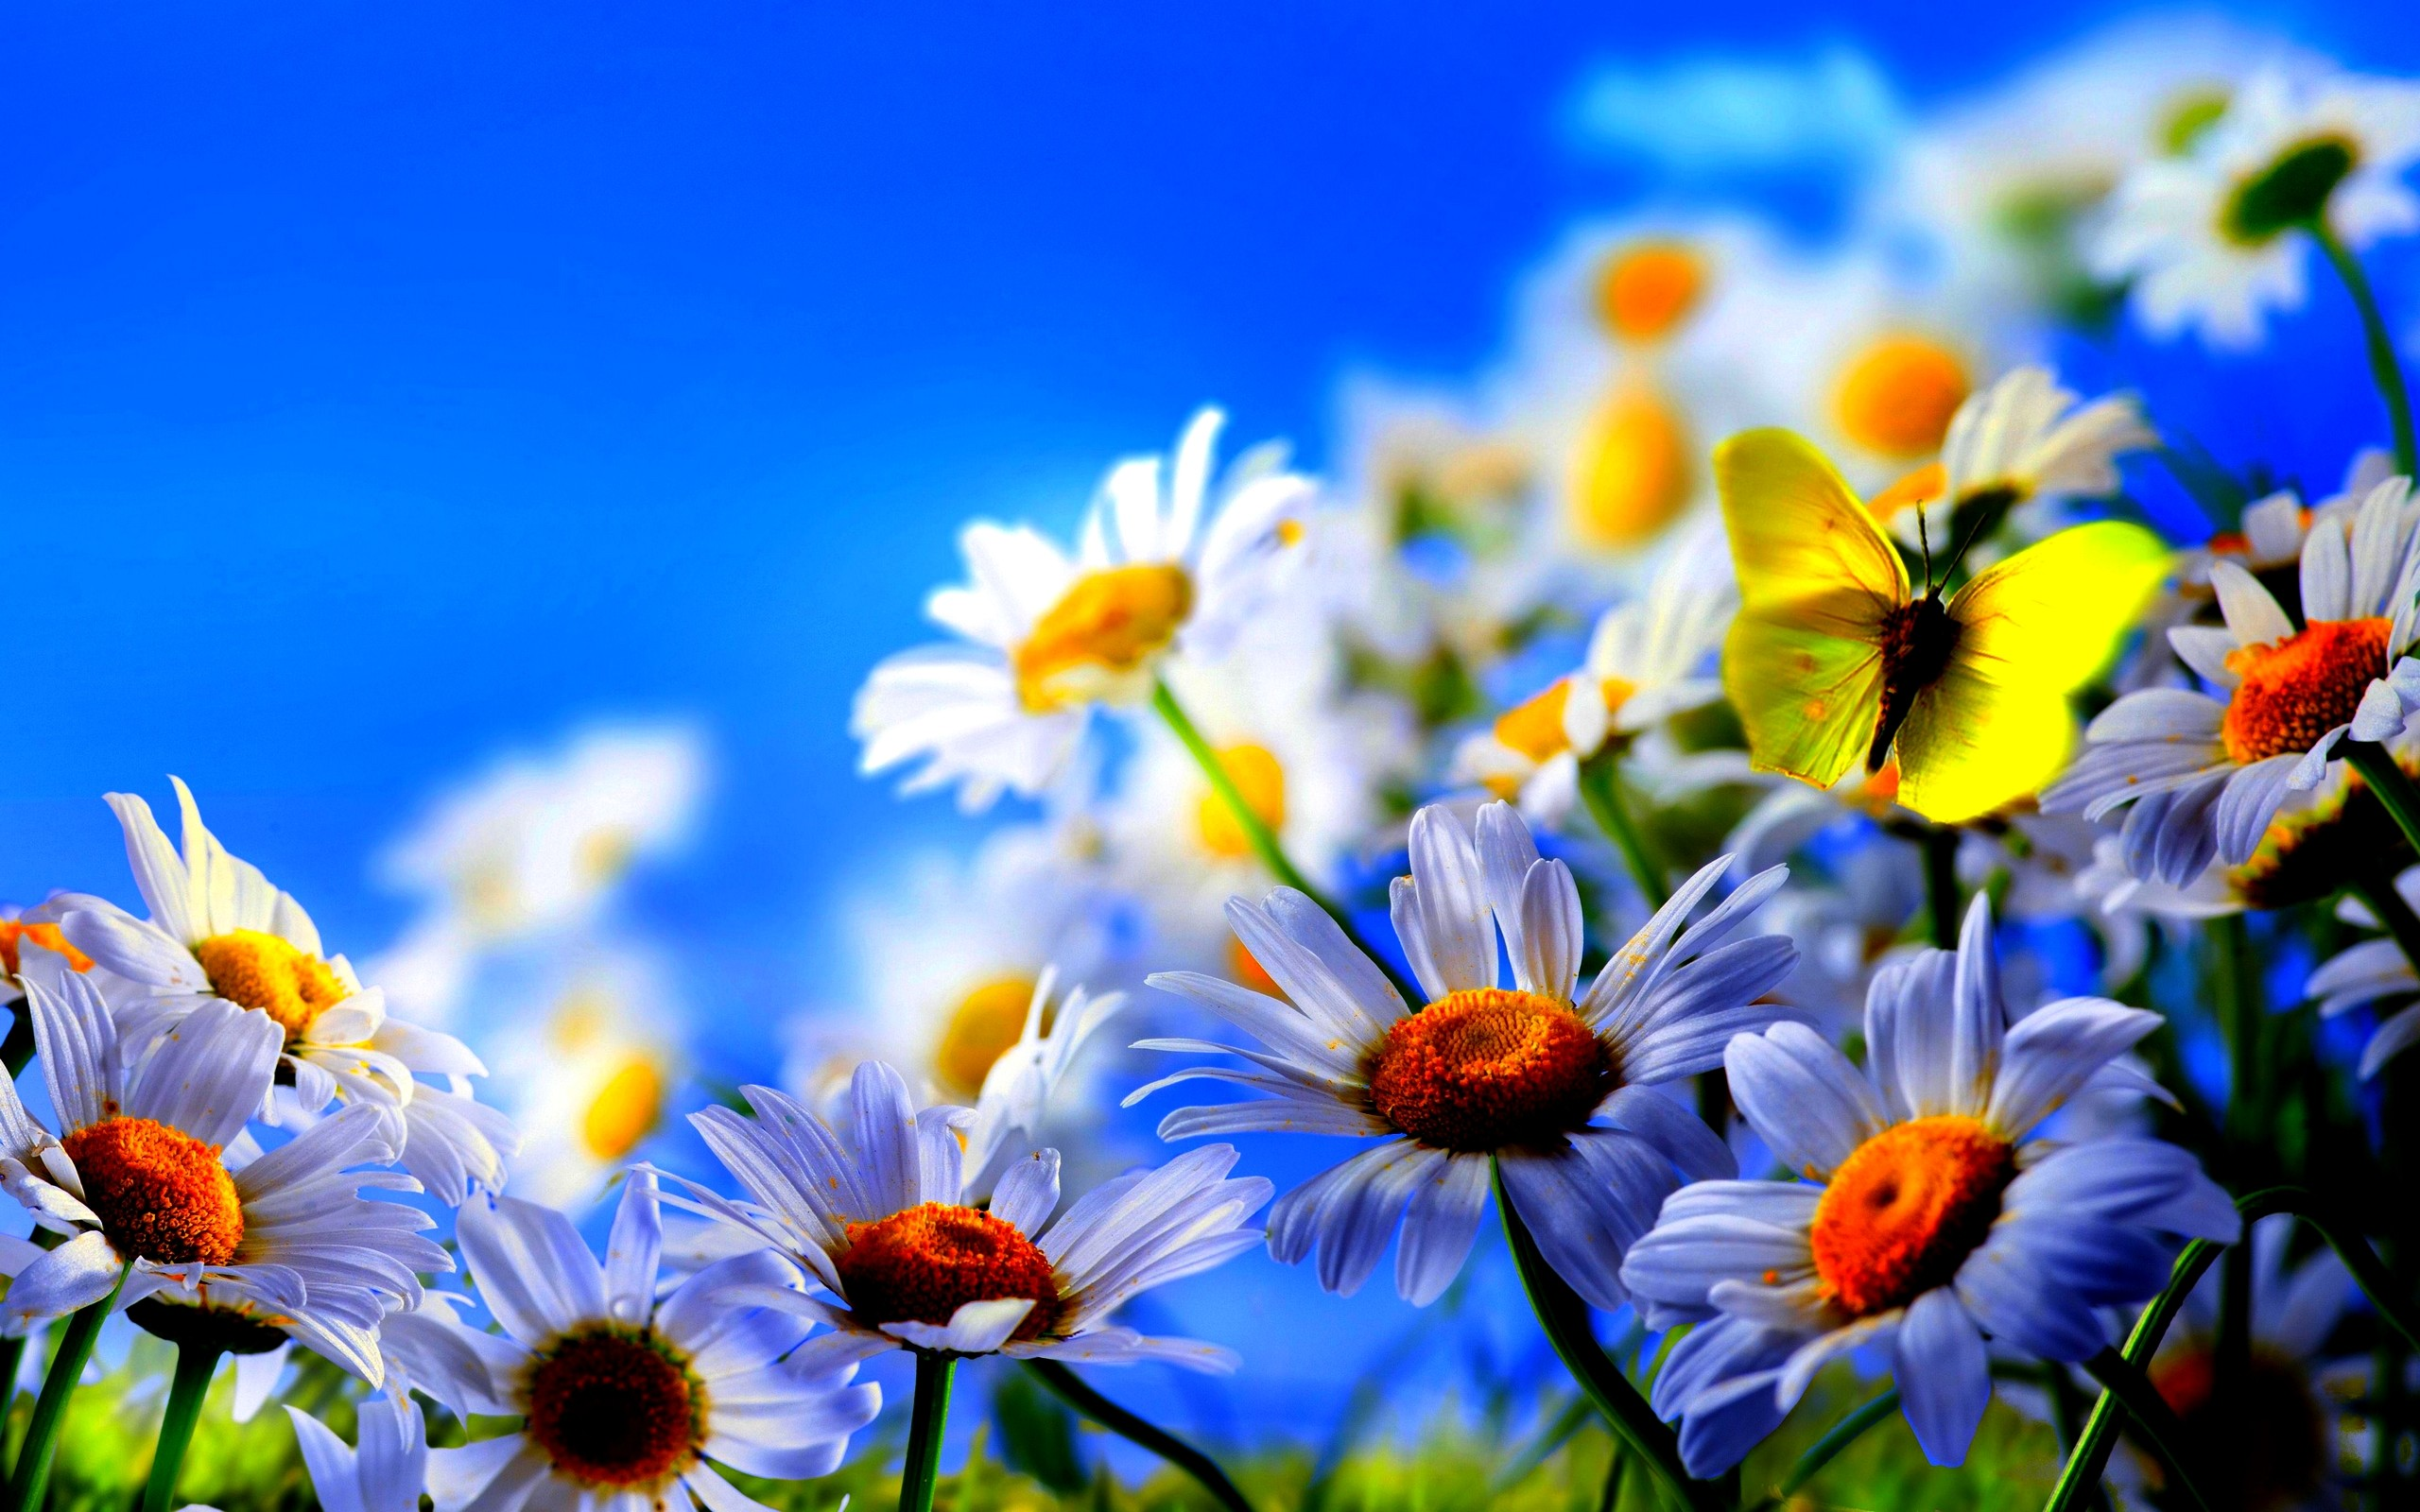 2560x1600 spring flowers butterflies background hd Wallpaper HD